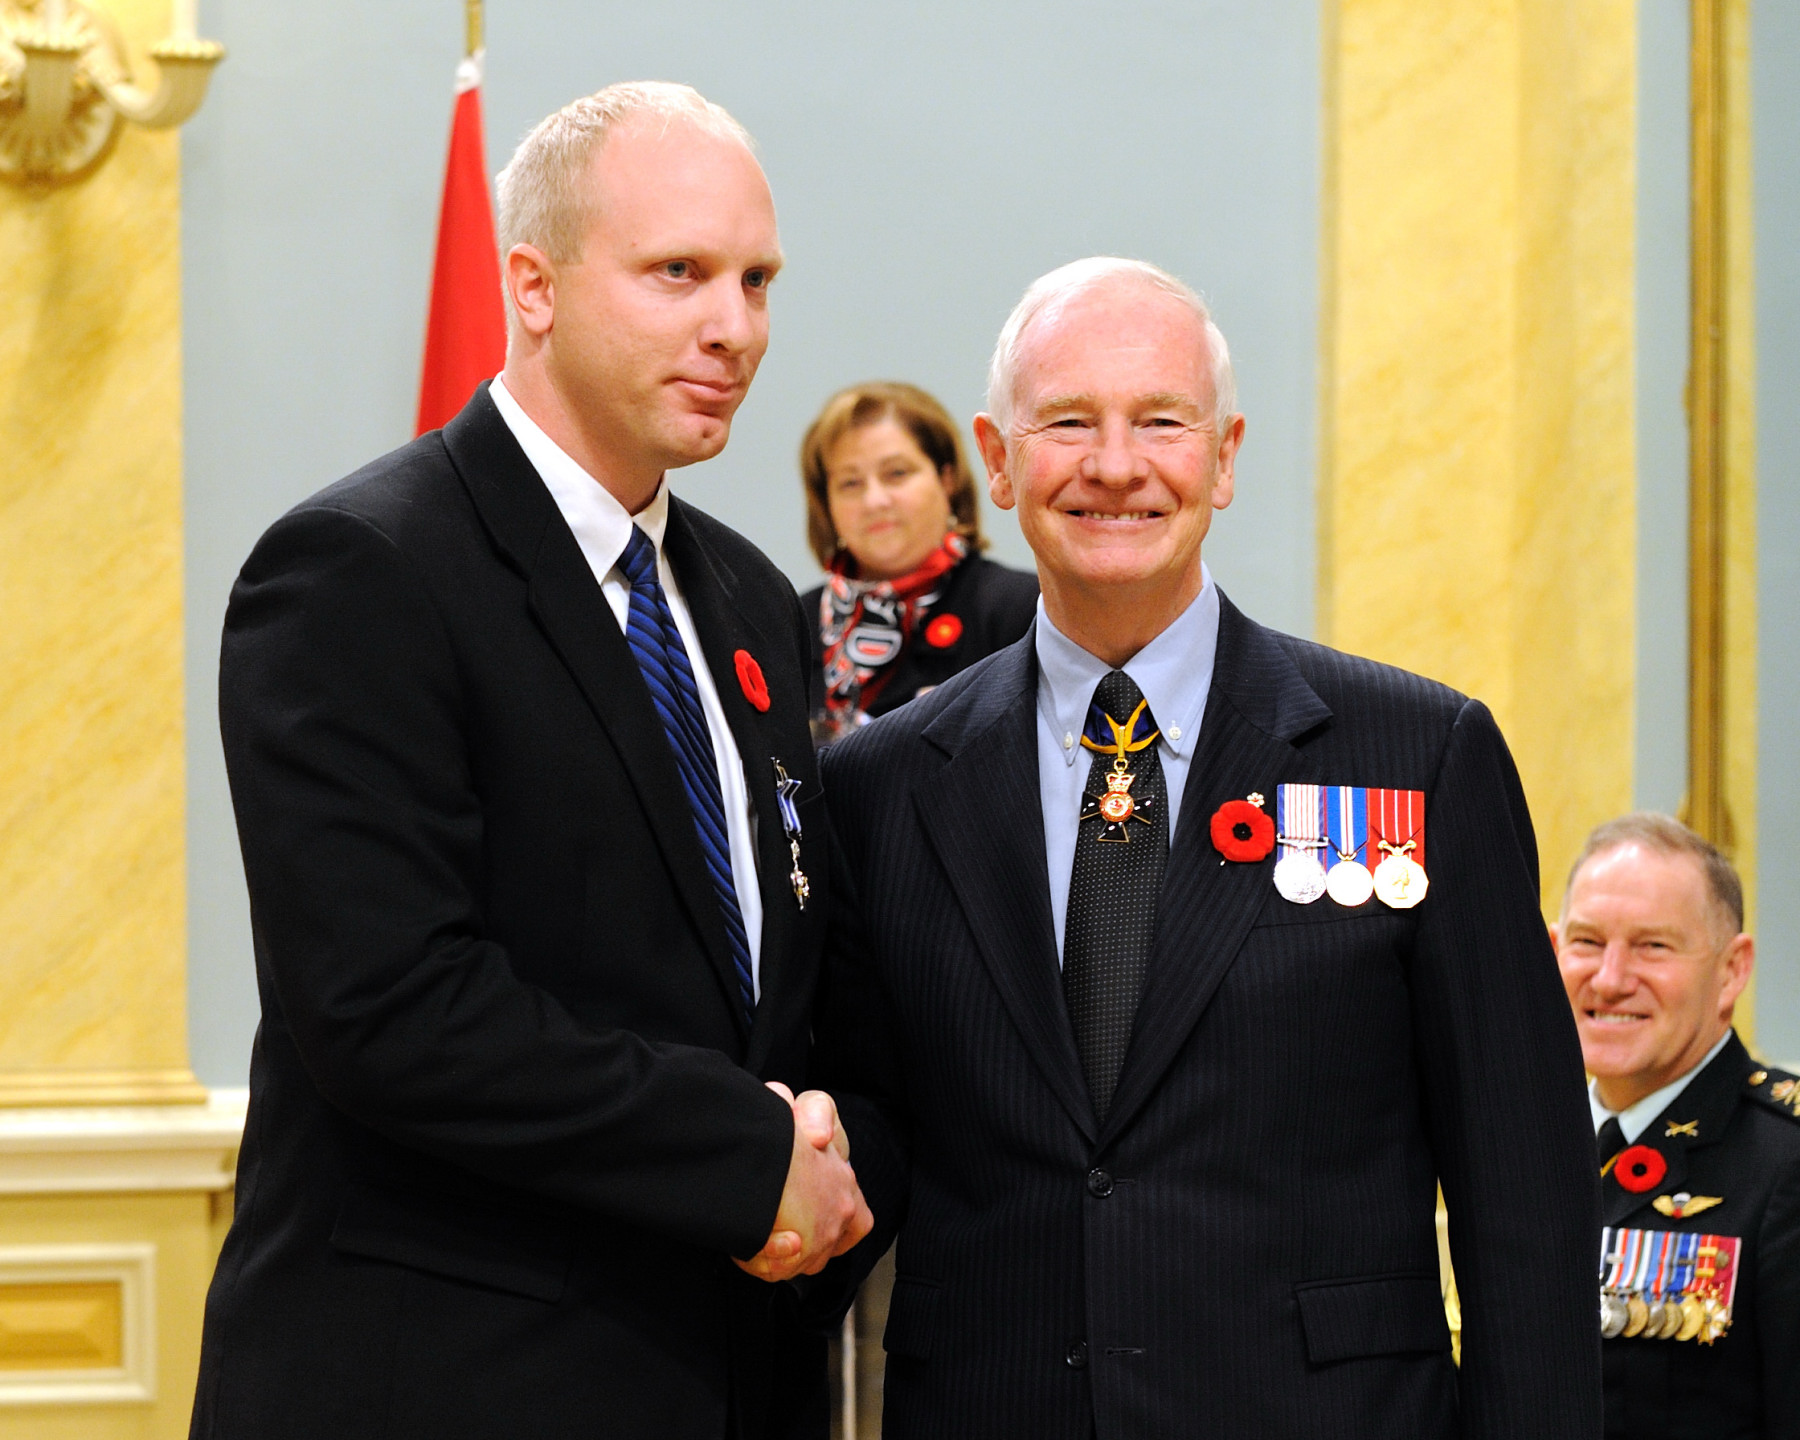 Sergeant Joseph Martin Brink, M.S.C., received the Meritorious Service Cross (Military Division) from the Governor General. On January 15, 2006, Sergeant Brink demonstrated exemplary leadership as the section commander during an attack on his patrol convoy by a suicide vehicle borne improvised explosive device. He quickly established a security perimeter and sent a detailed report to command headquarters, which allowed for the rapid dispatch of the quick reaction force to provide assistance at the scene. He then entered a burning, overturned and ammunition-laden vehicle to render aid to a trapped and seriously injured soldier until that soldier could be safely extracted. Sergeant Brink's perseverance and performance under extreme duress were exceptional.